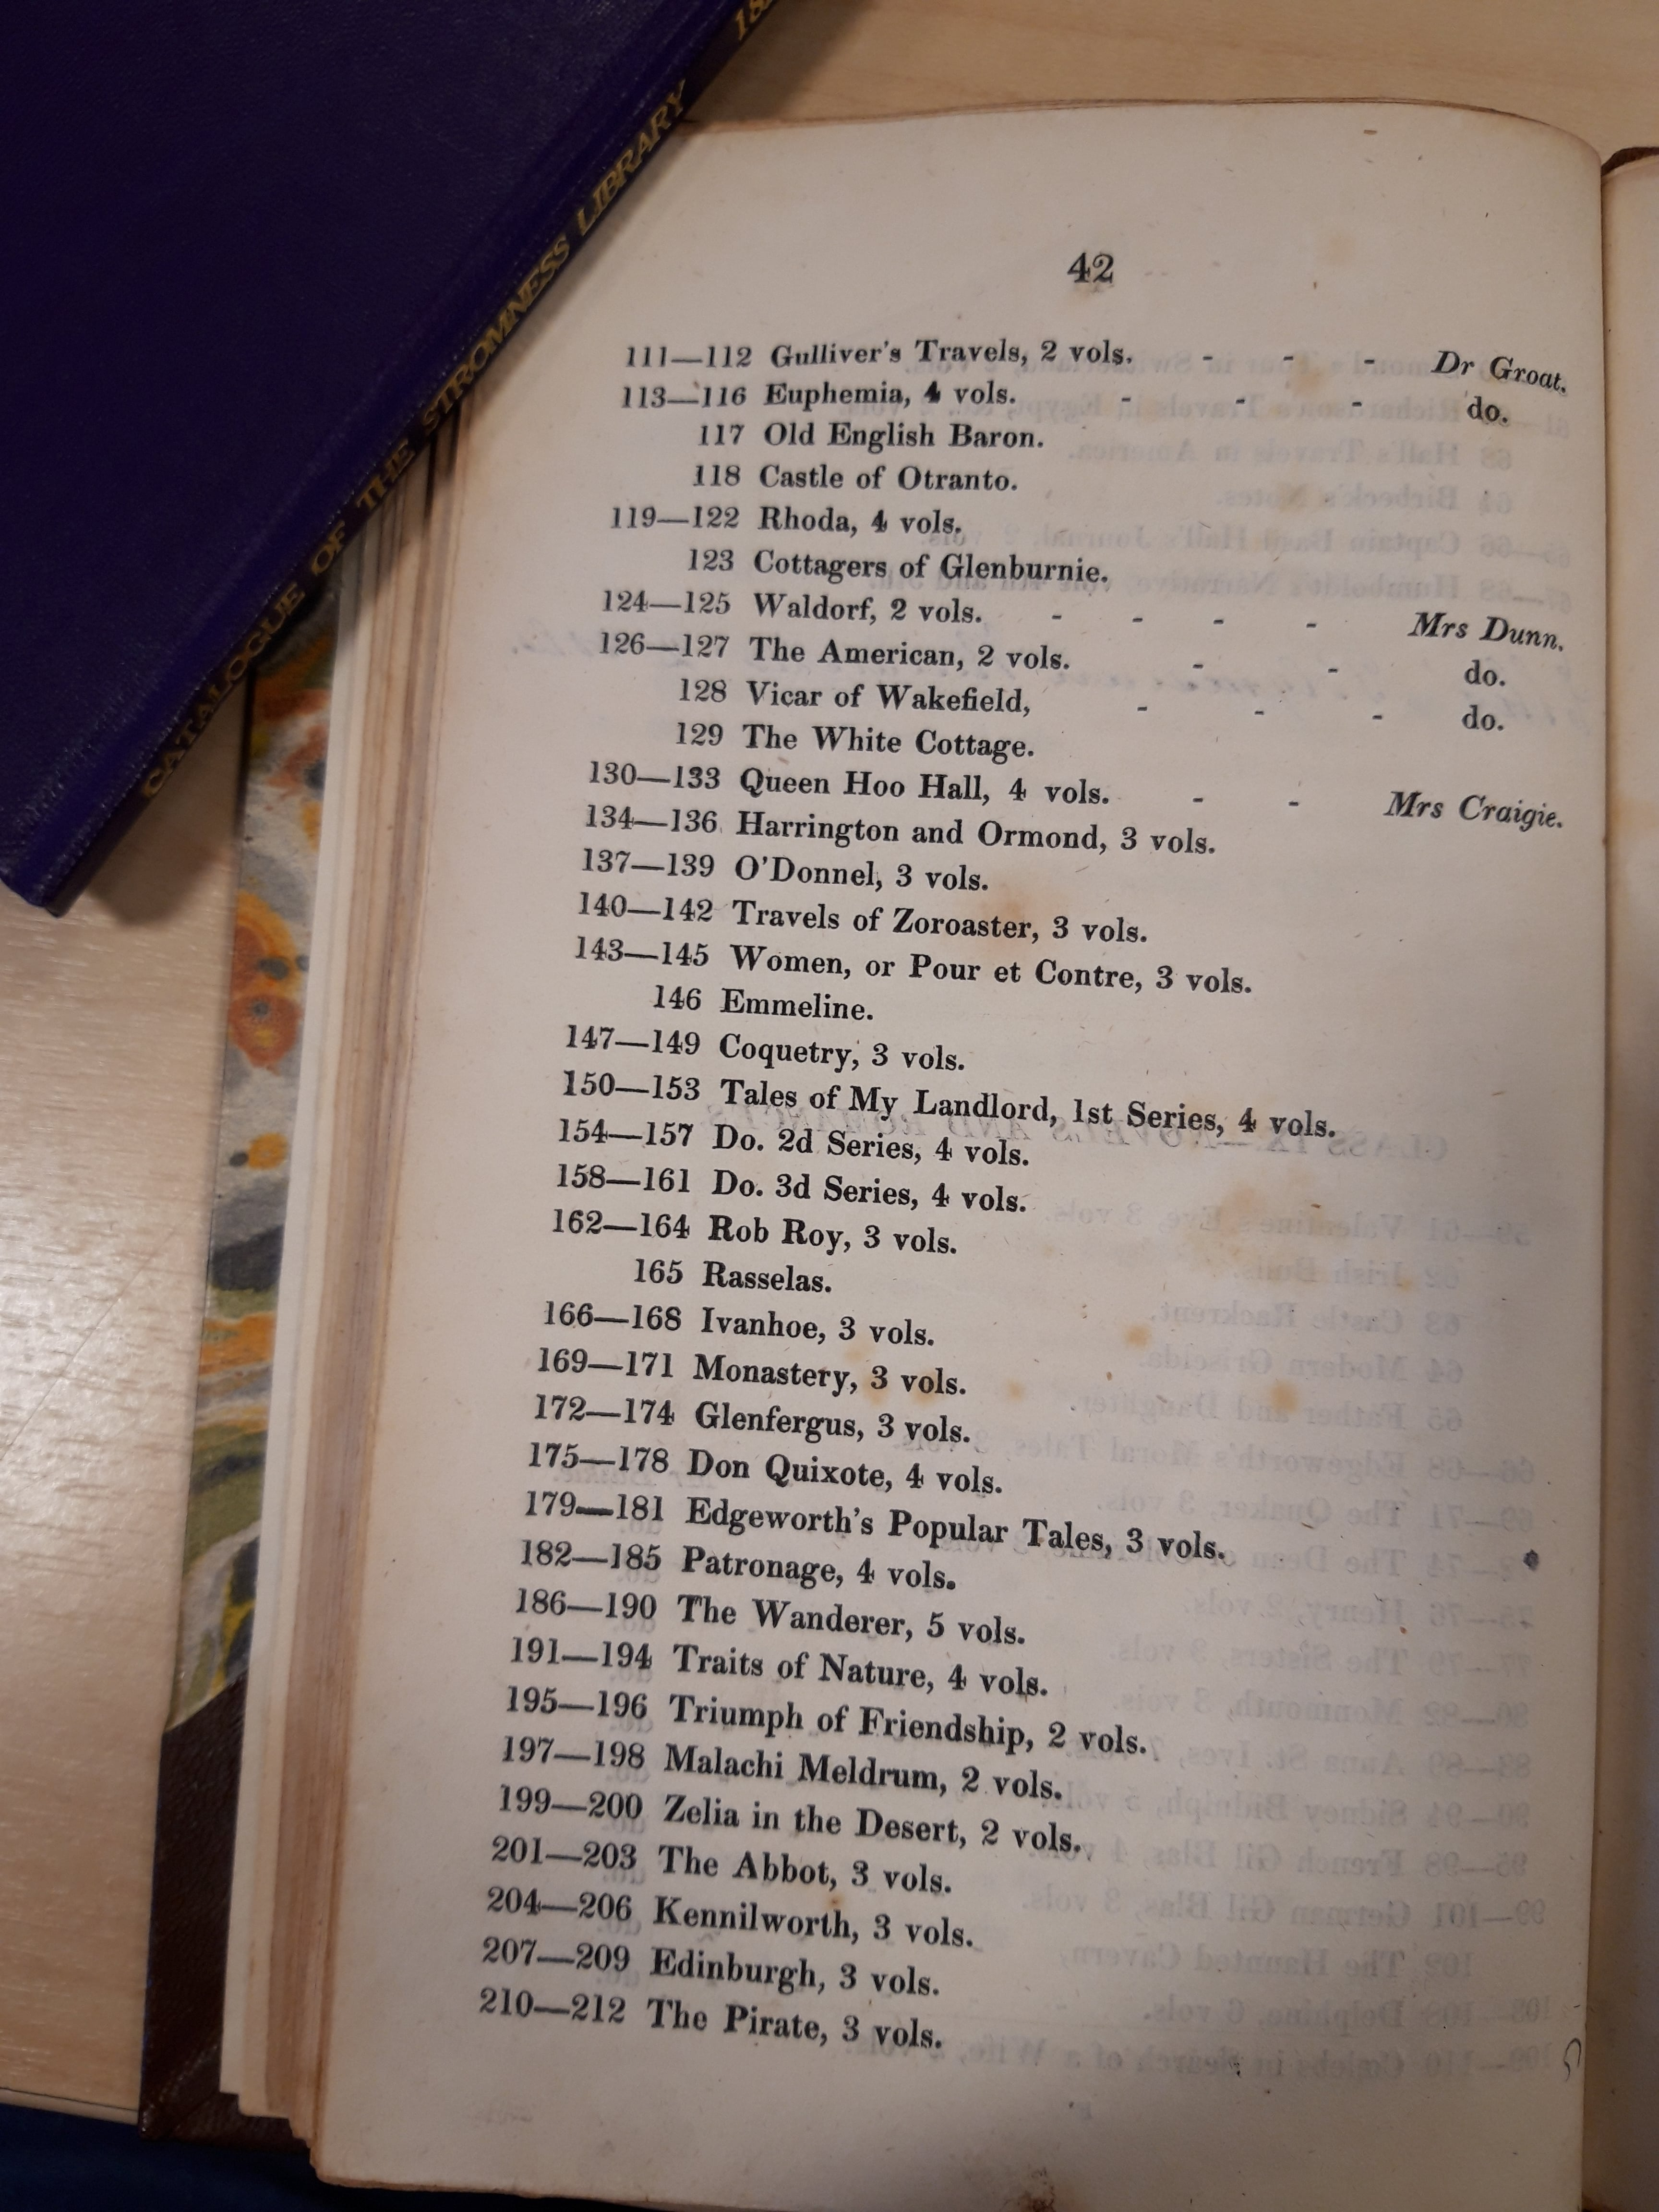 The Pirate listed in the Supplement to the 1816 Orkney Library catalogue